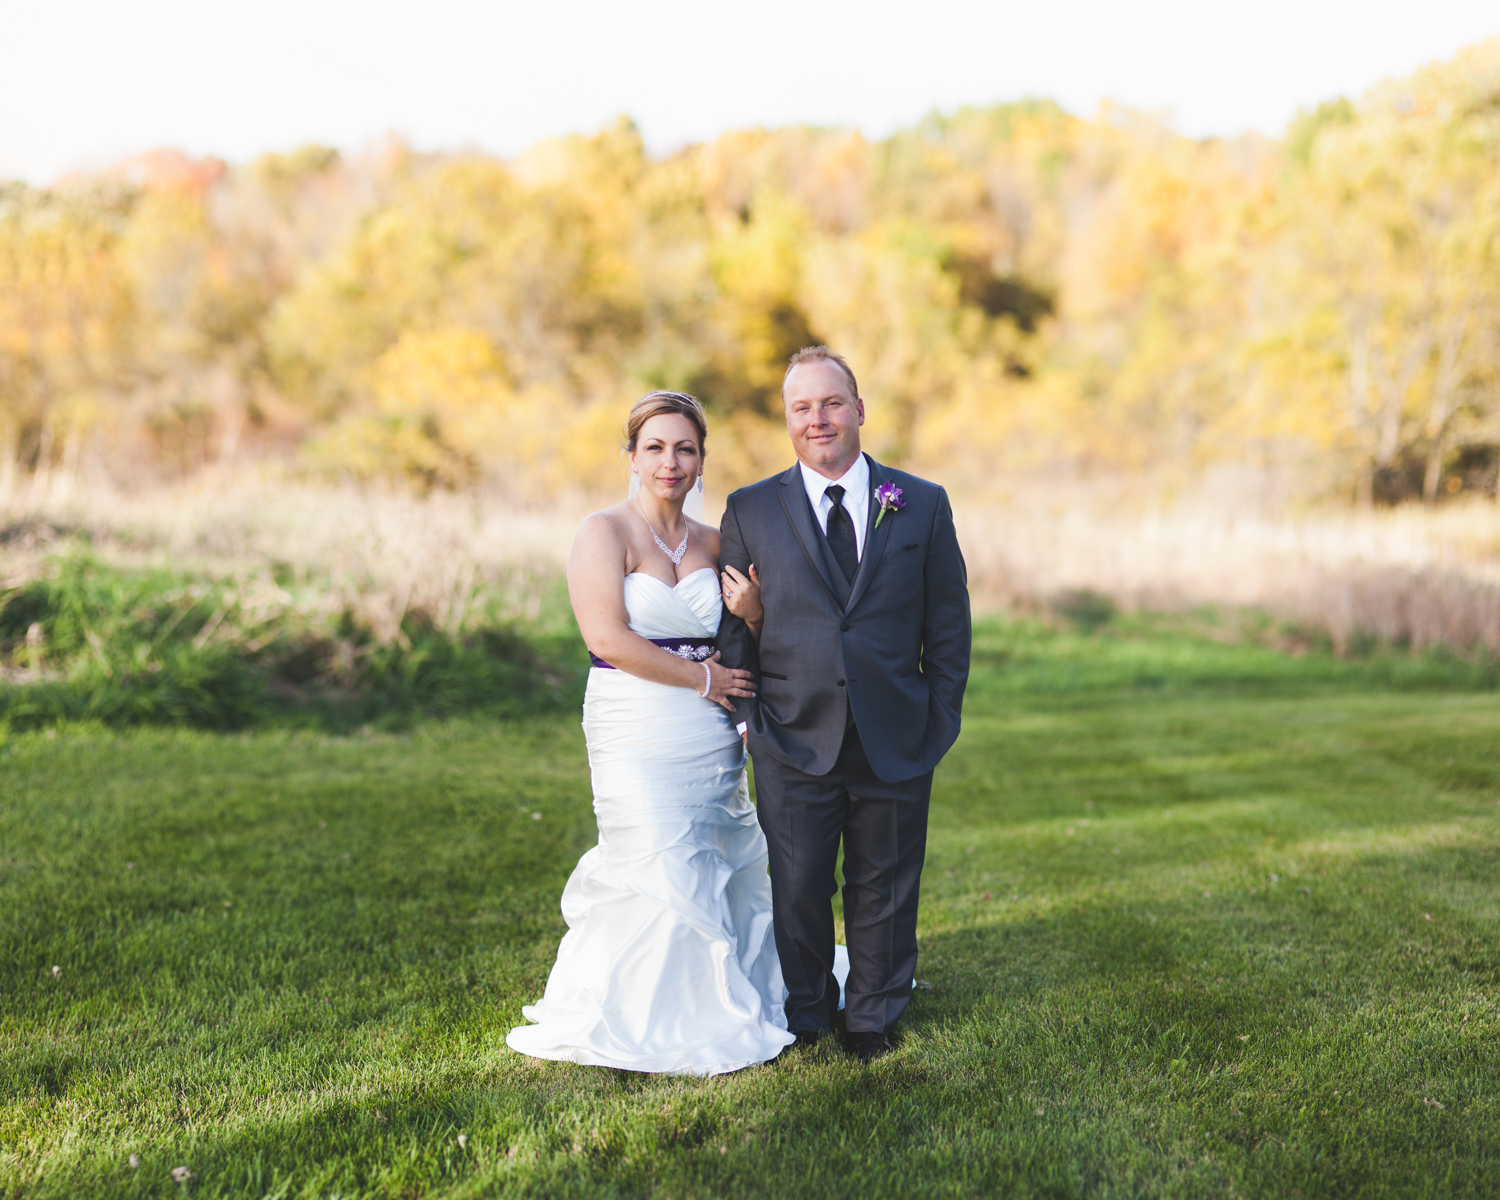 RYAN + LAURA |  NEW BERLIN, WI   WEDDING